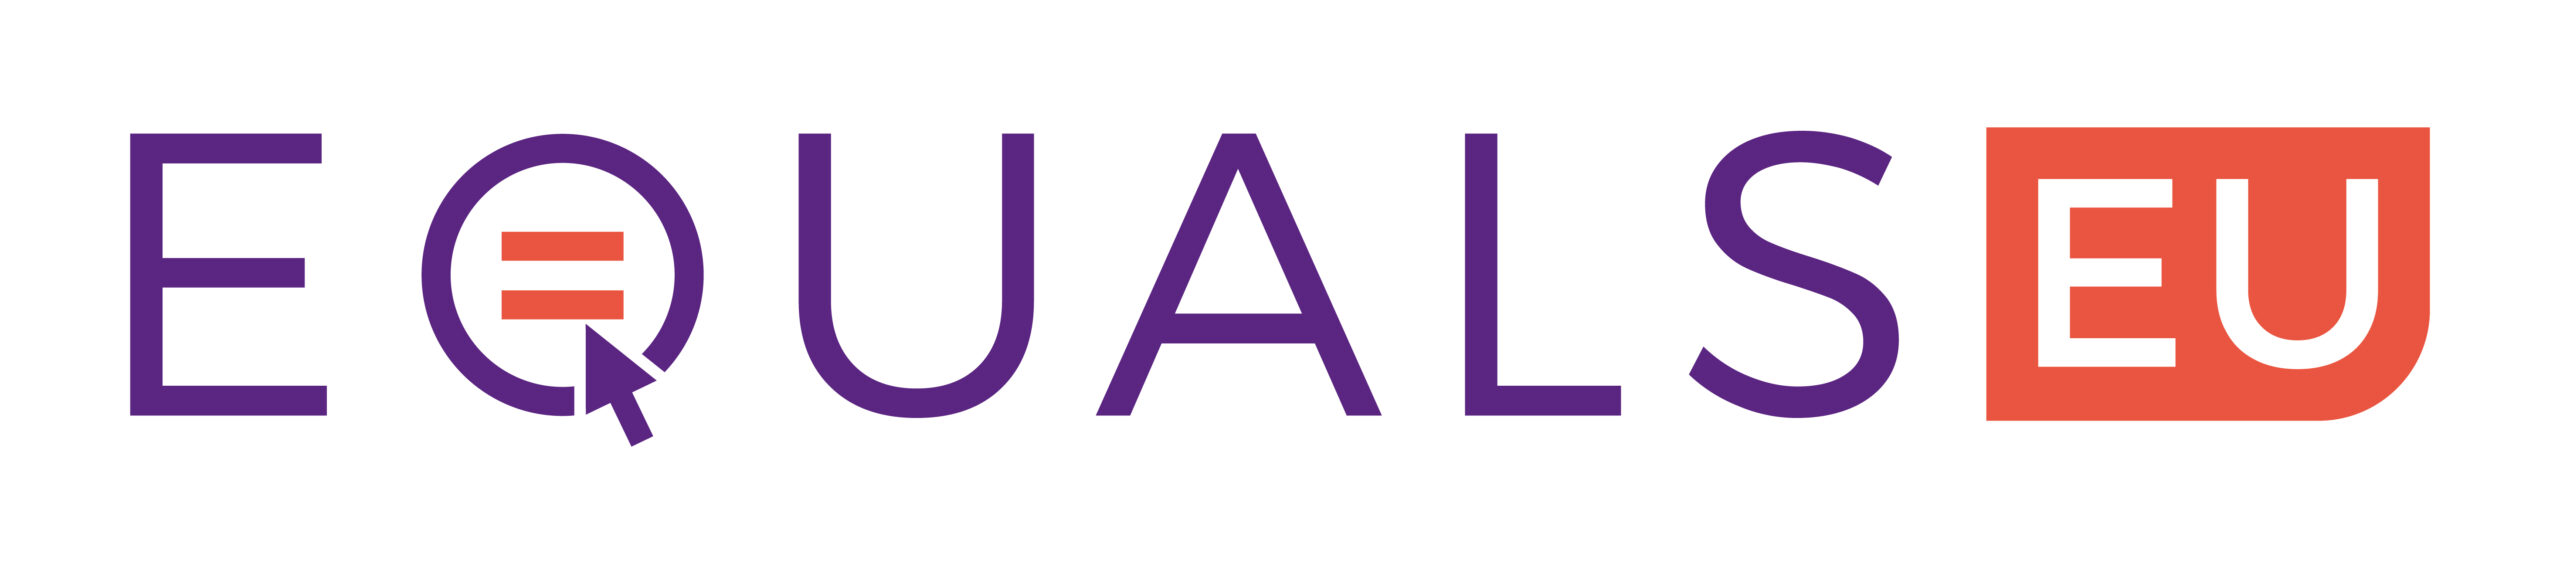 EQUALS EU logo: Equals text in purple, the q is formed of an o with an equals sign inside it, an arrow is about to click it to form the letter q. EU written in white in an orange box